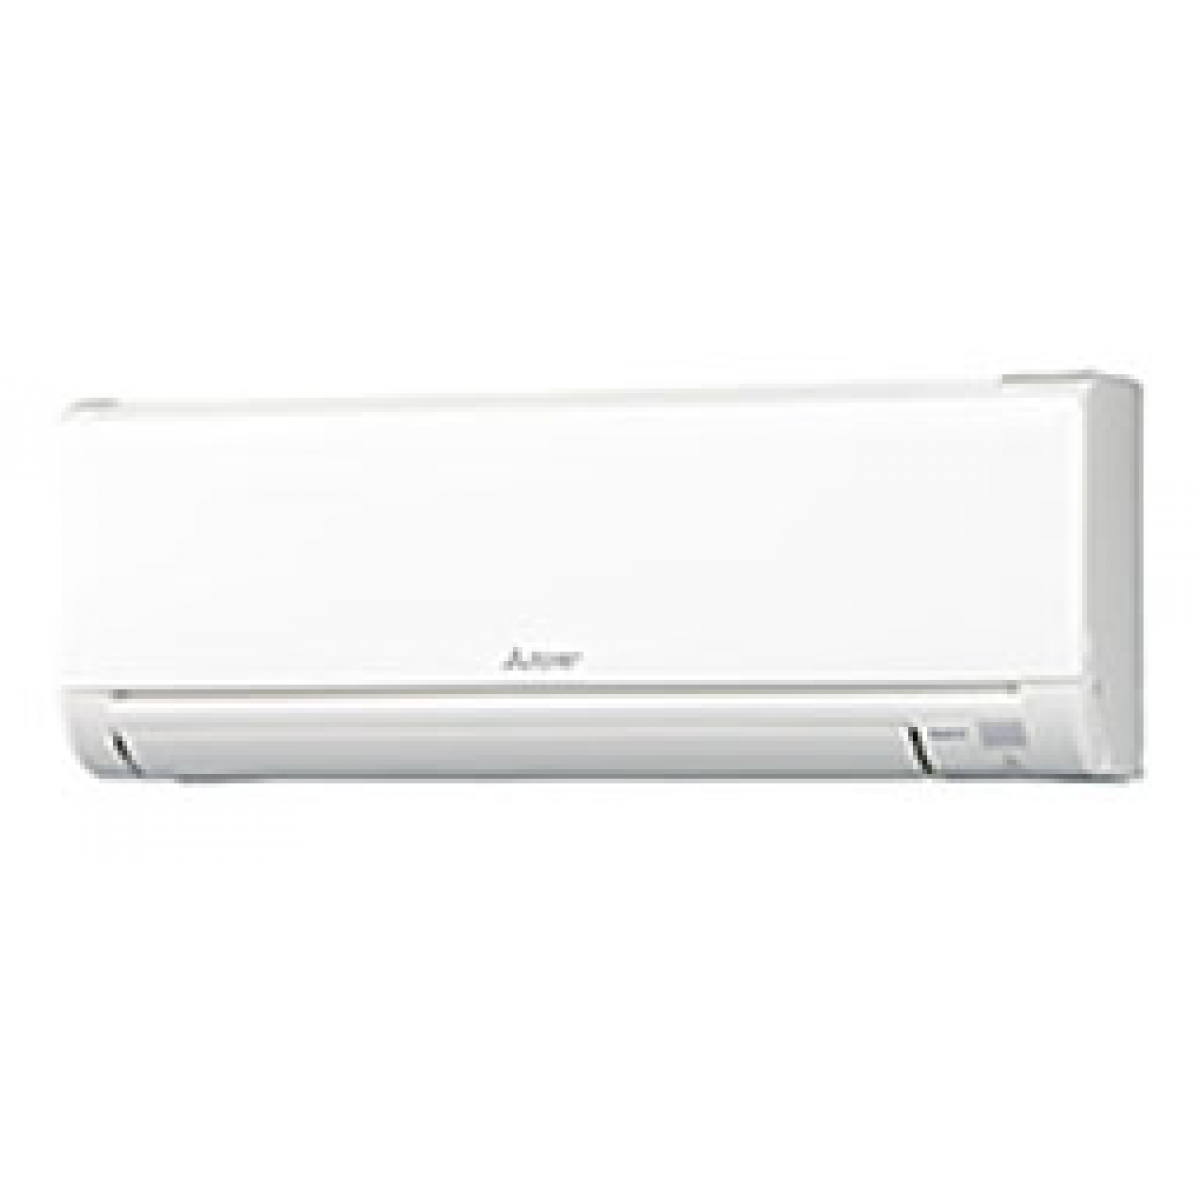 #696862 18K BTU Mitsubishi MSYGL Wall Mounted Air Conditioner  Most Recent 14590 Wall Units Air Conditioner image with 1200x1200 px on helpvideos.info - Air Conditioners, Air Coolers and more